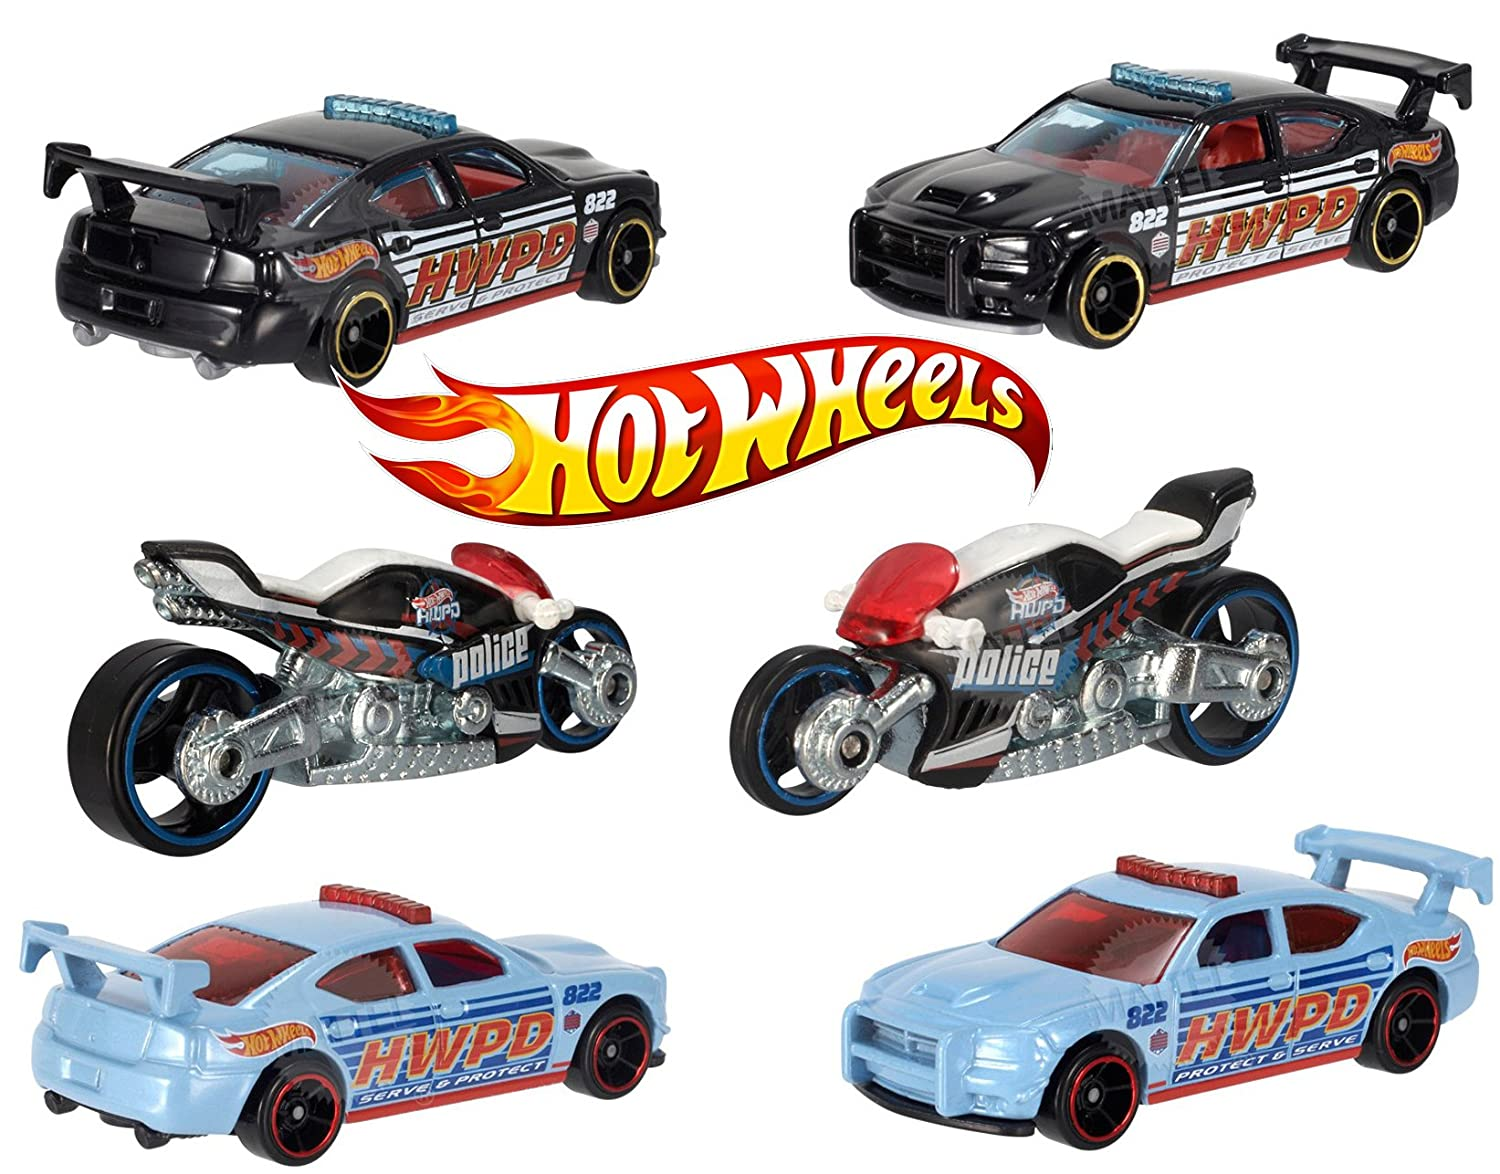 Hw hot wheels 2015 hw city 48 250 canyon carver police motorcycle - Amazon Com Dodge Charger Drift Canyon Carver Motorcycle Hot Wheels Rescue Highway Patrol Police Vehicles 48 Toys Games